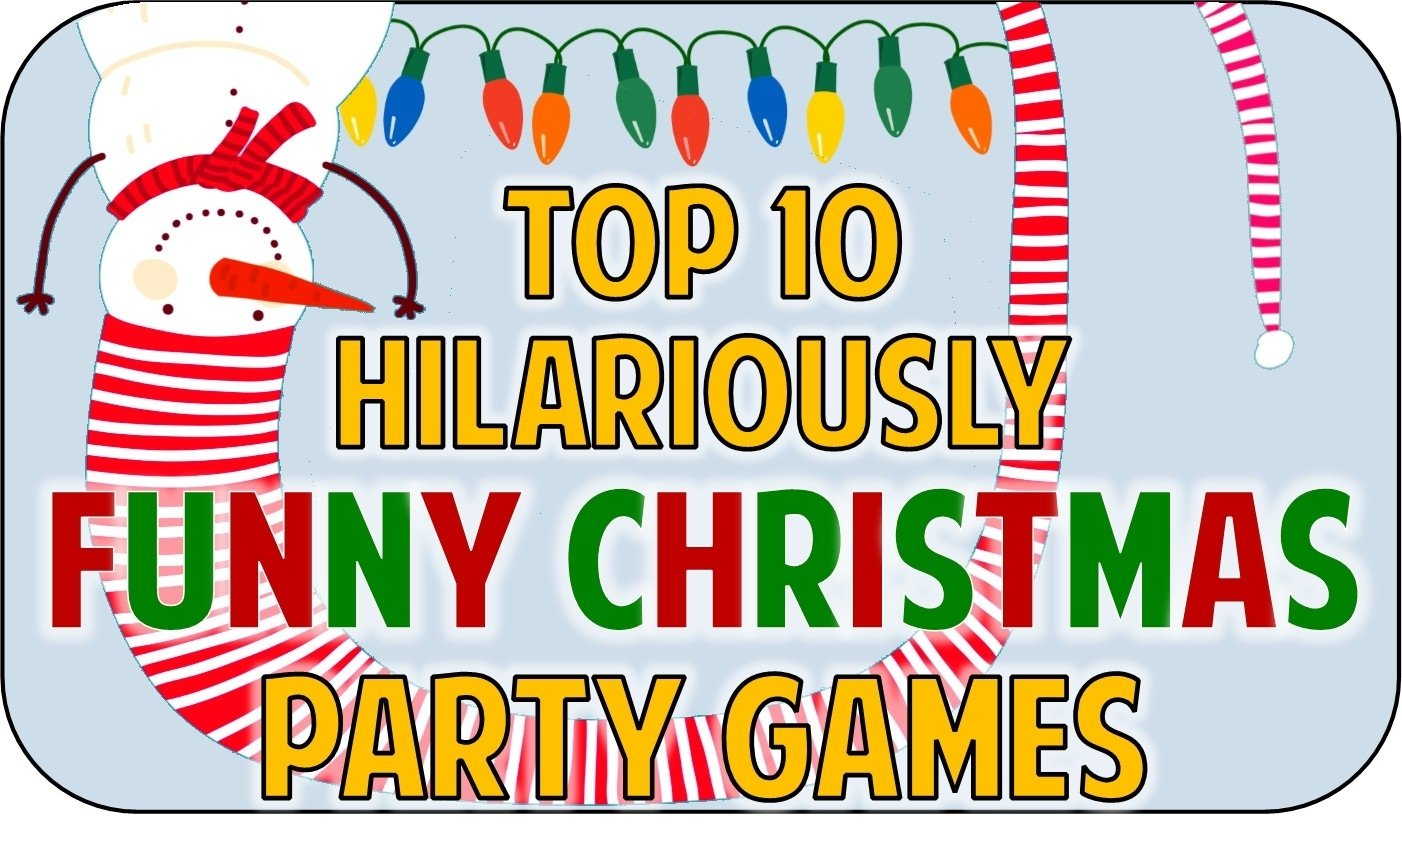 10 Stylish Christmas Game Ideas For Families top 10 funny christmas party game ideas 3 2020